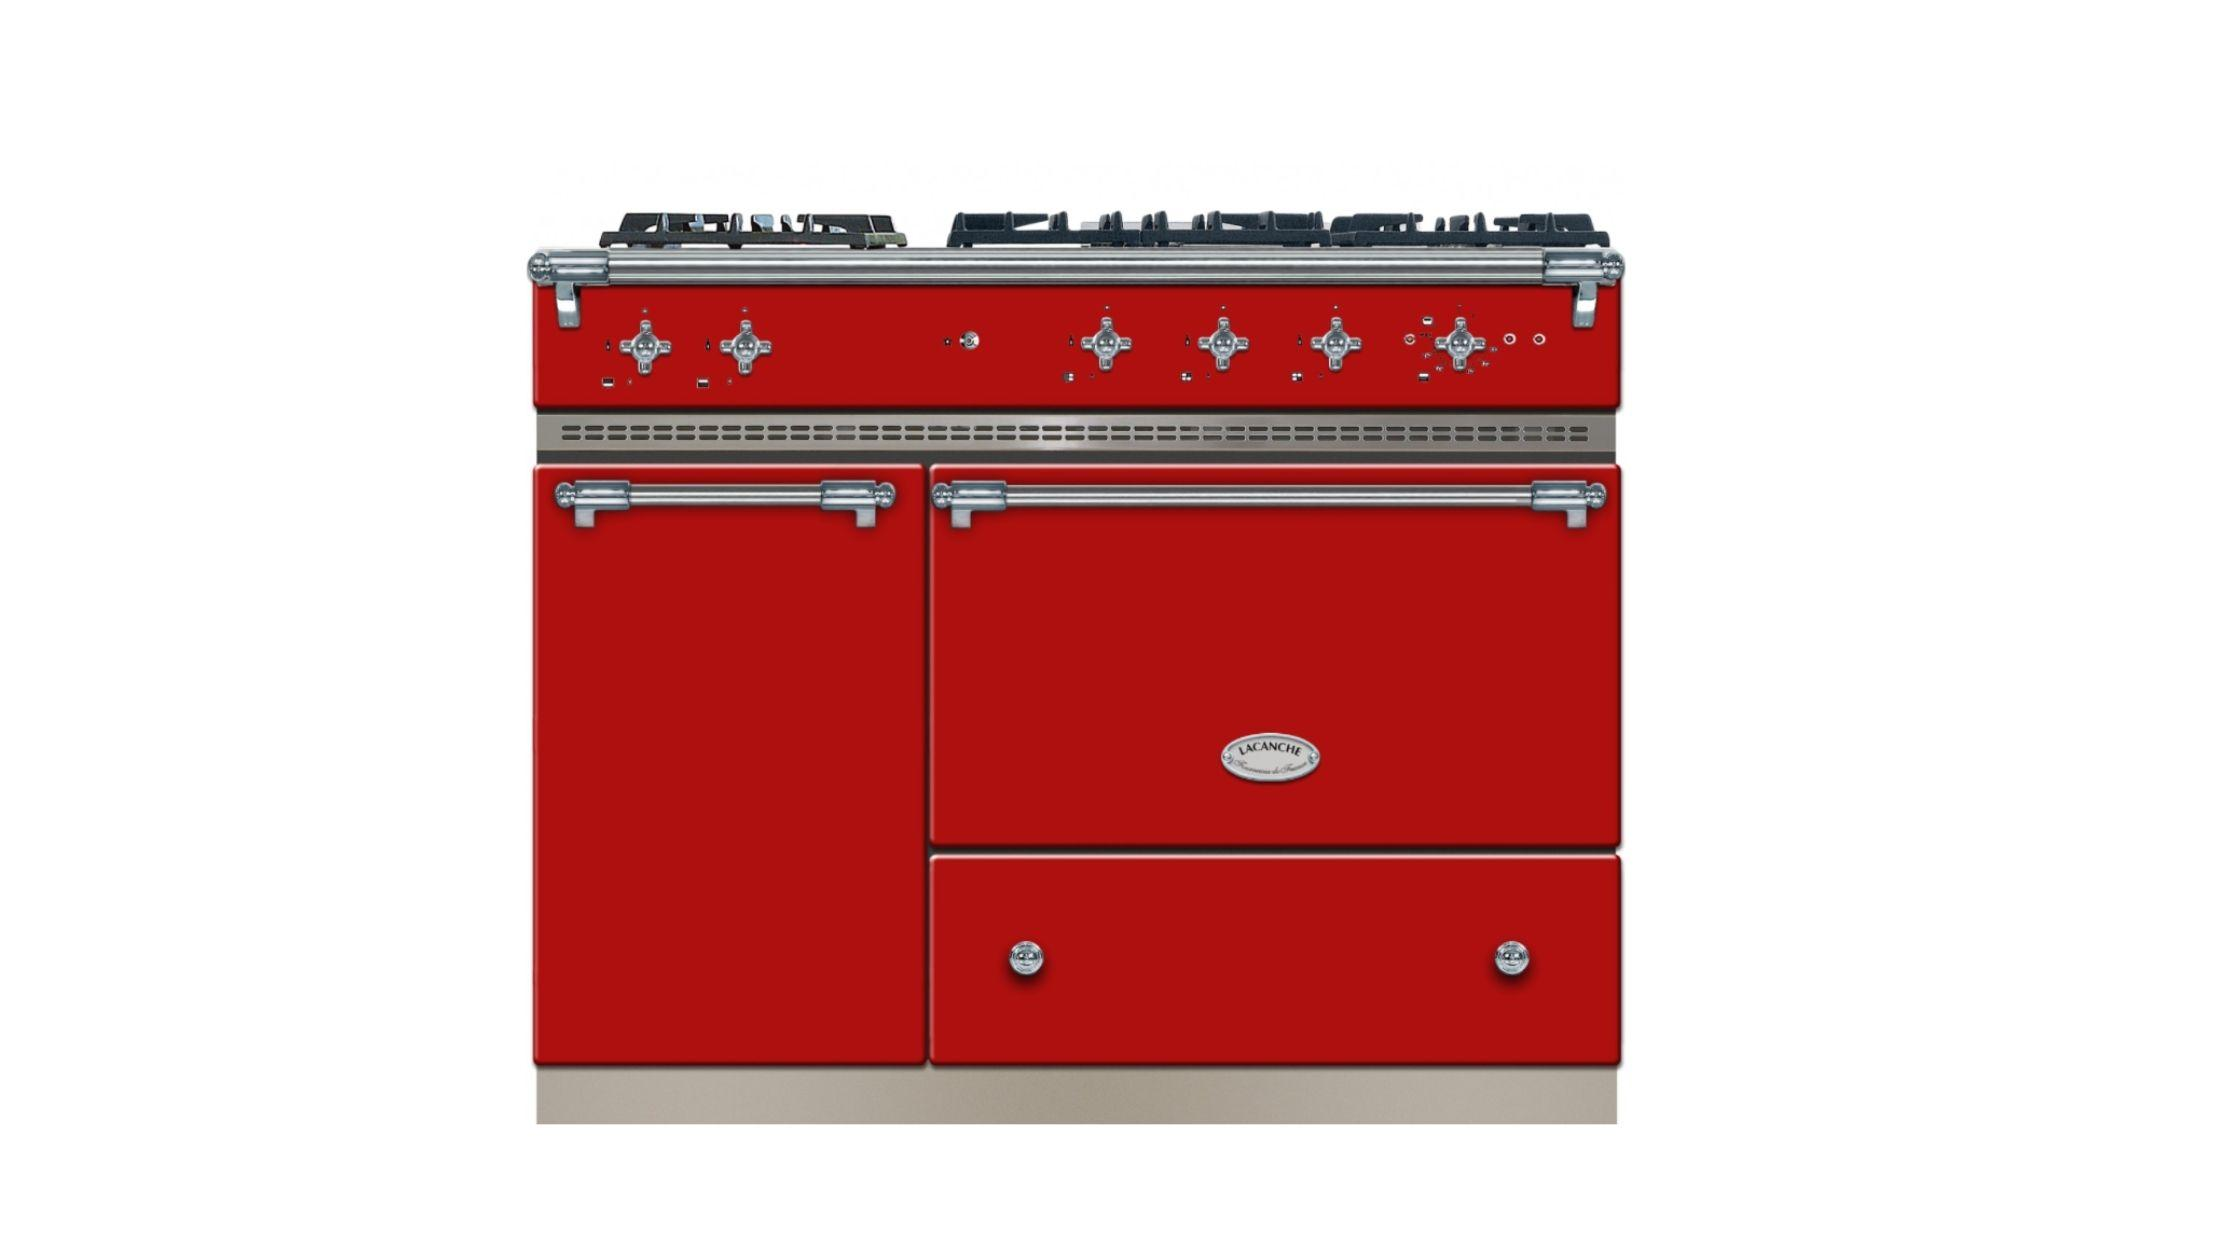 Saulieu in Cherry Red and Chrome Trim